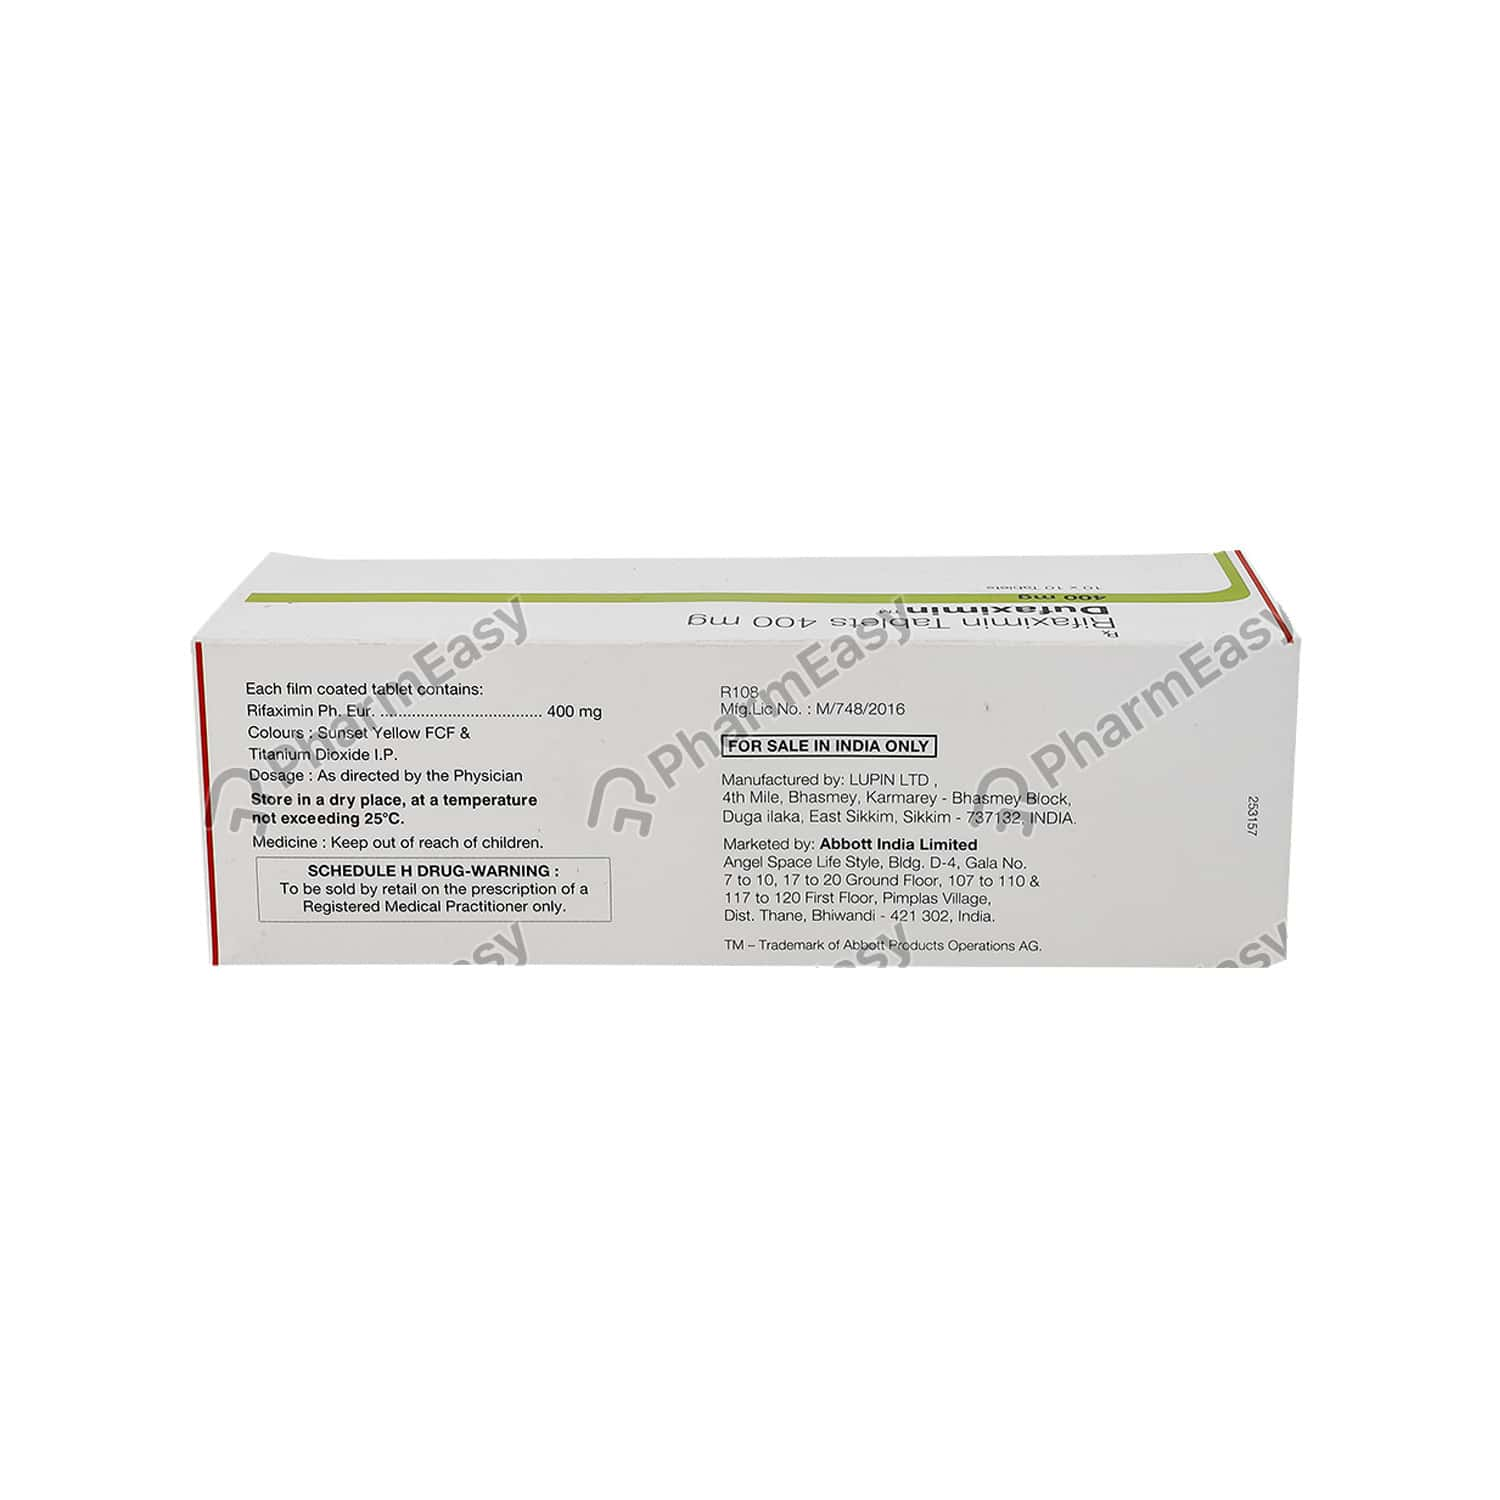 Dufaximin 400mg Tablet